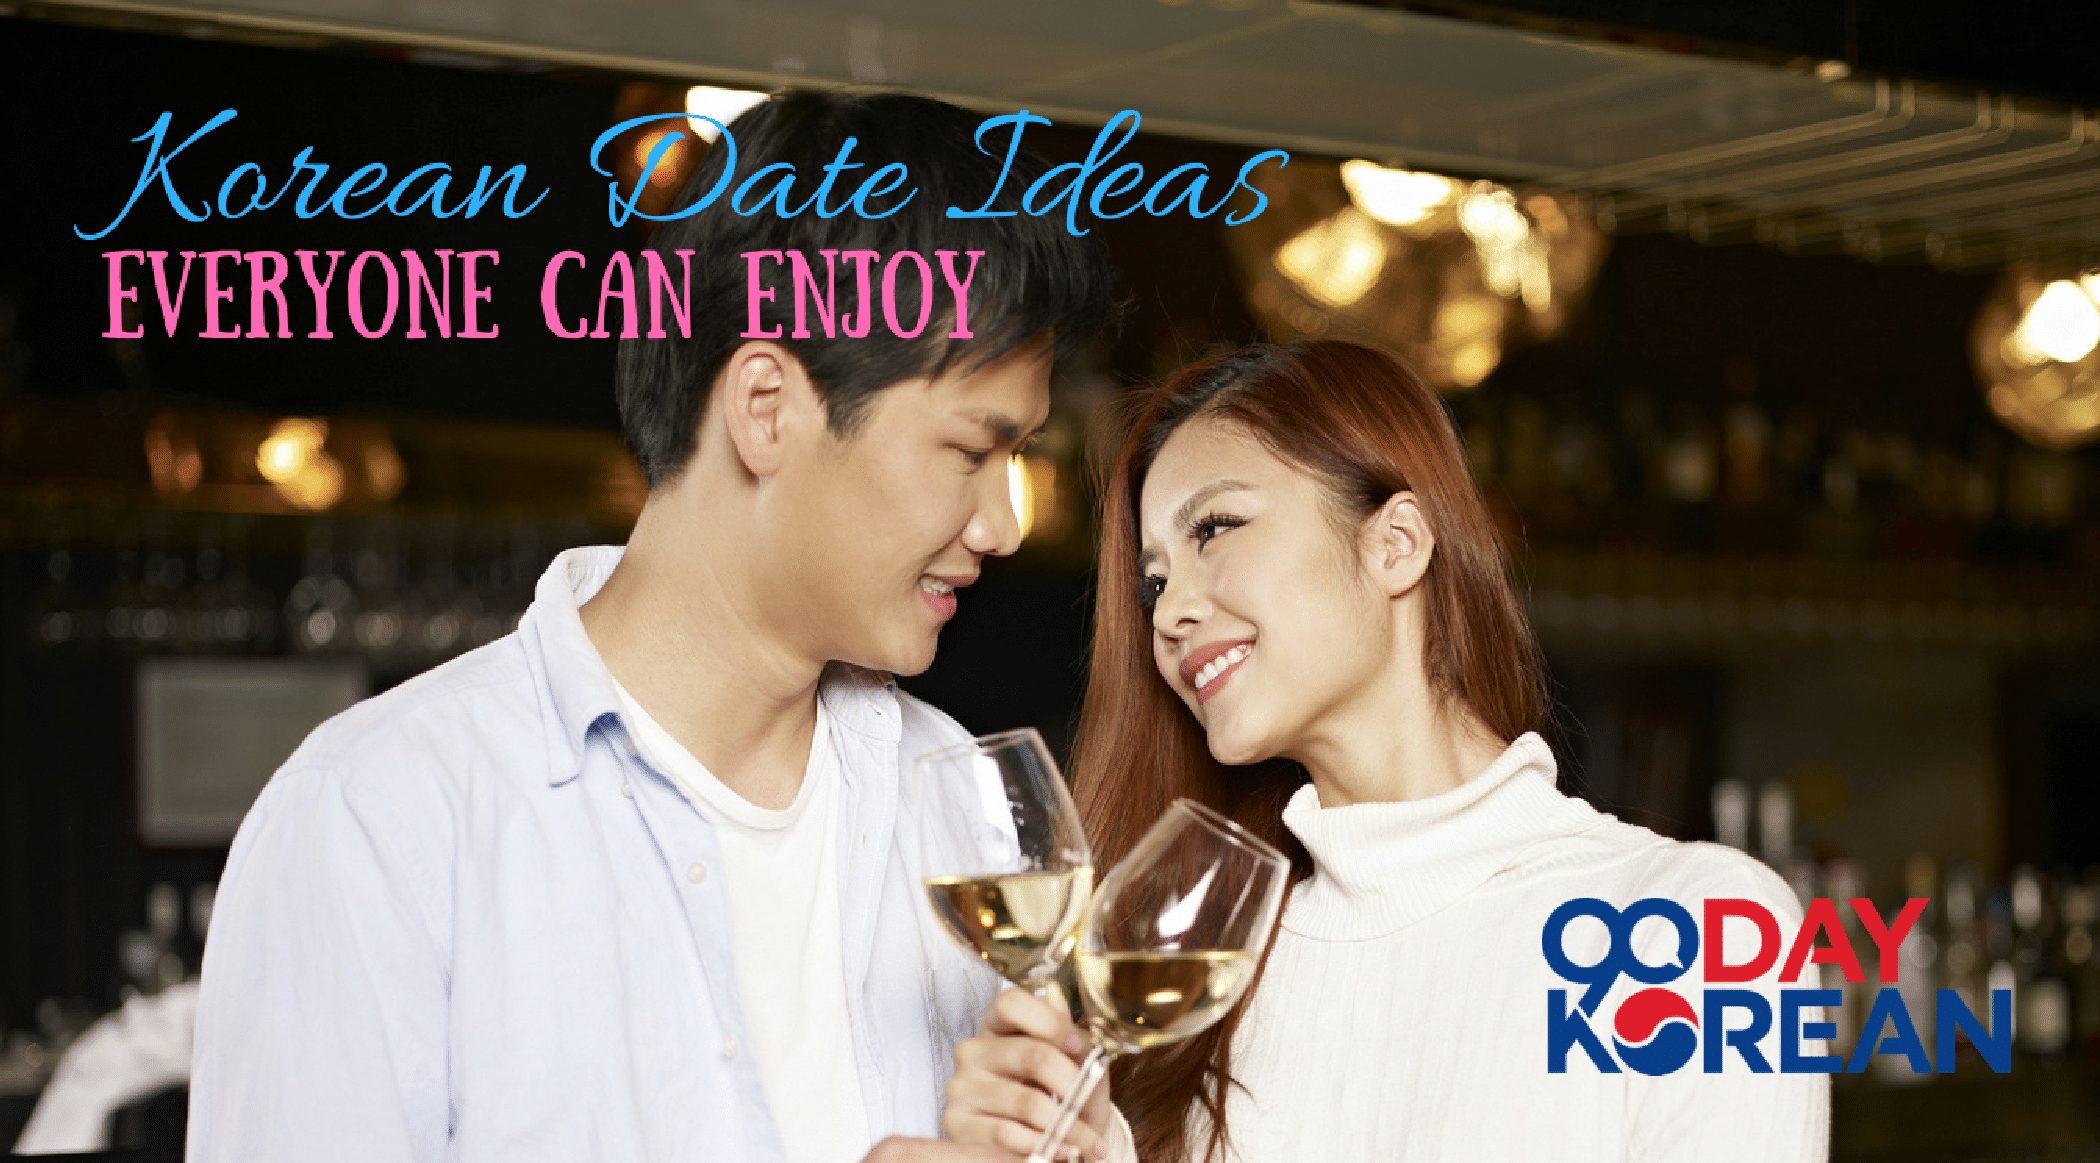 10 Korean Date Ideas Everyone Can Enjoy